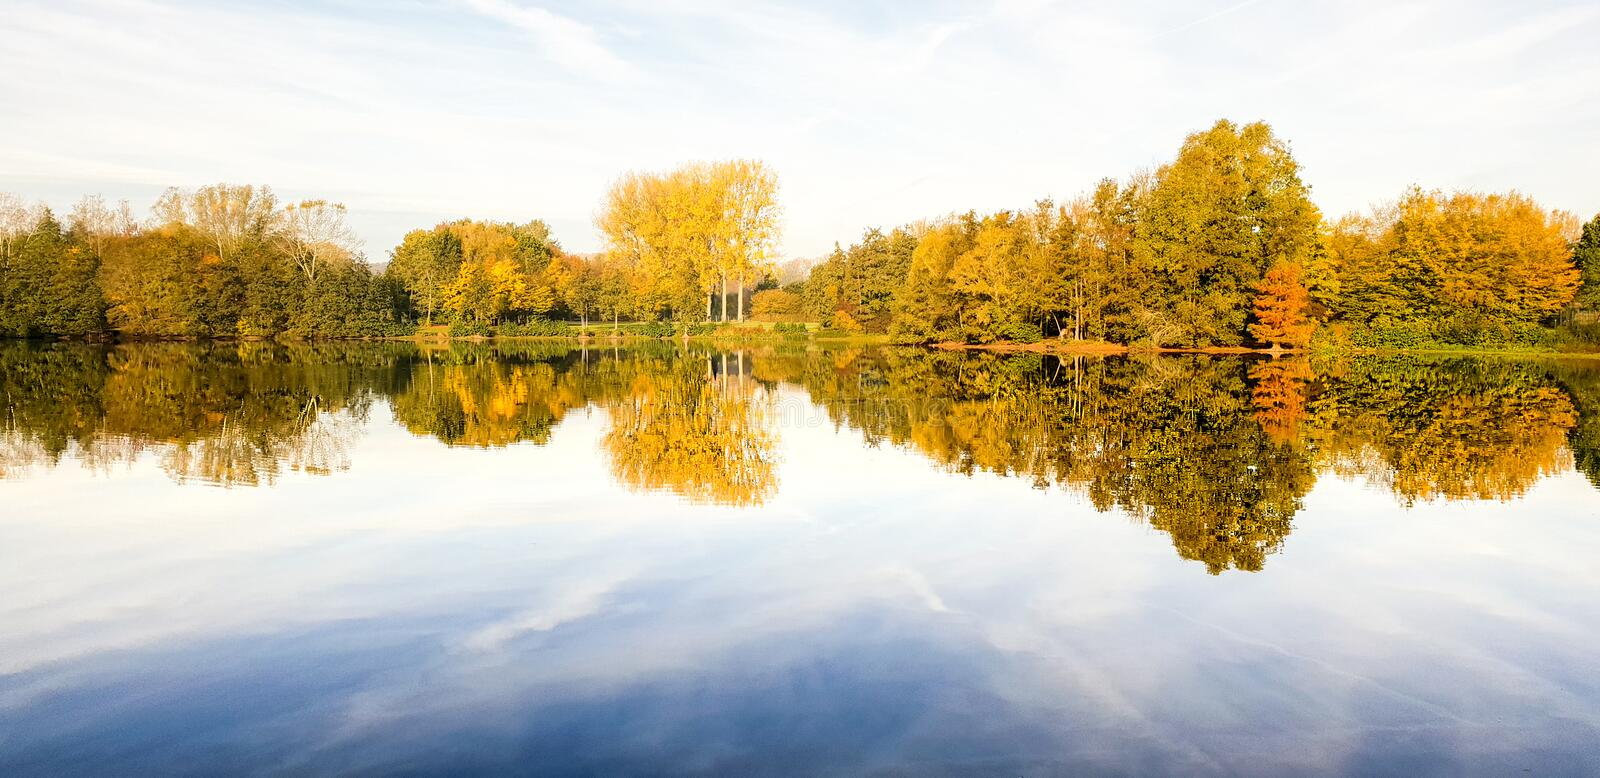 Autumn scene at a lake with reflections of trees in the water royalty free stock photo